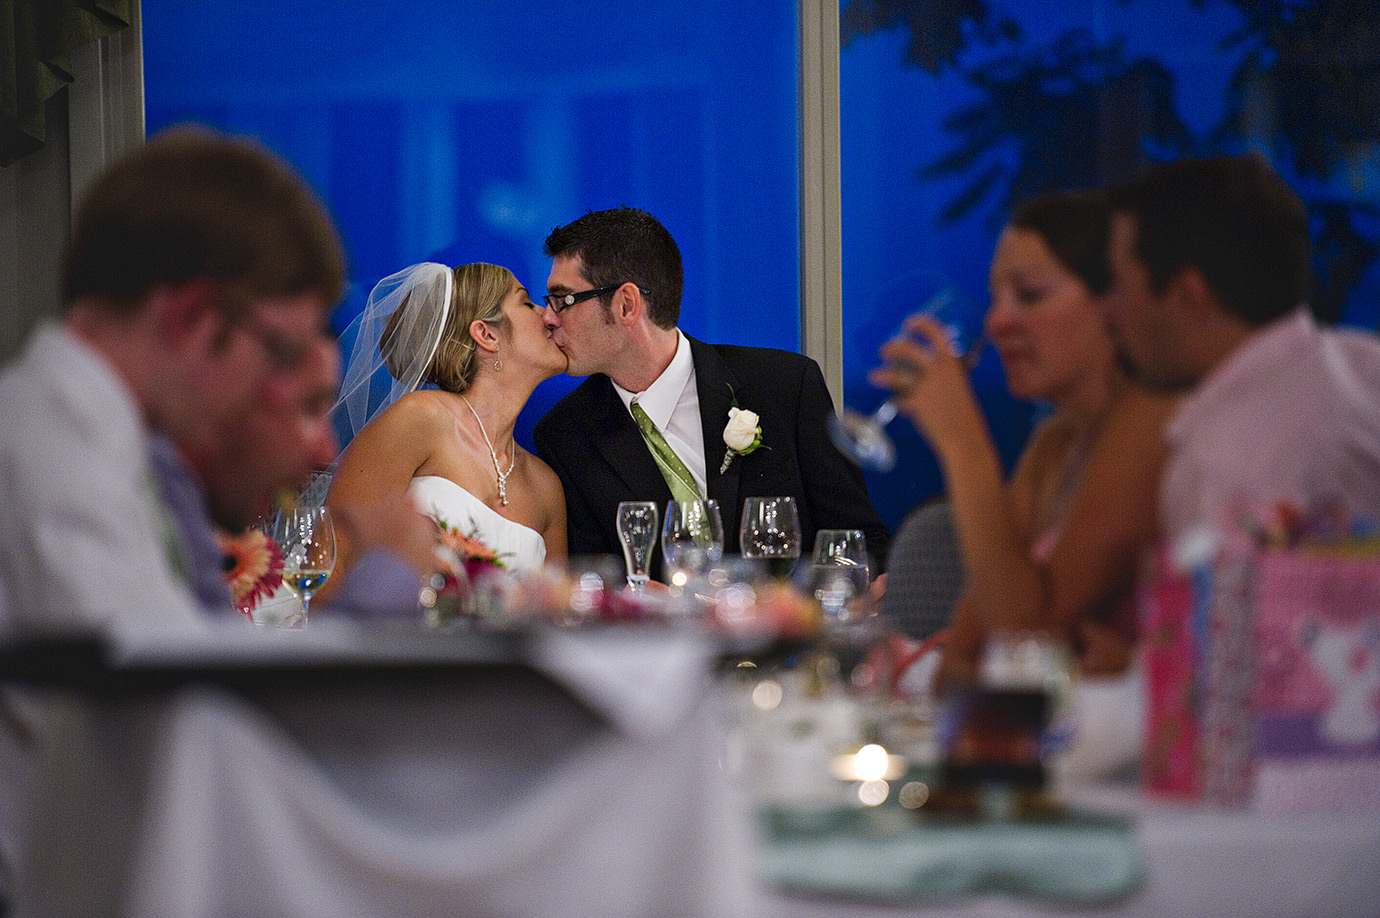 halifax_wedding_photographers_Jeff_Cooke_36